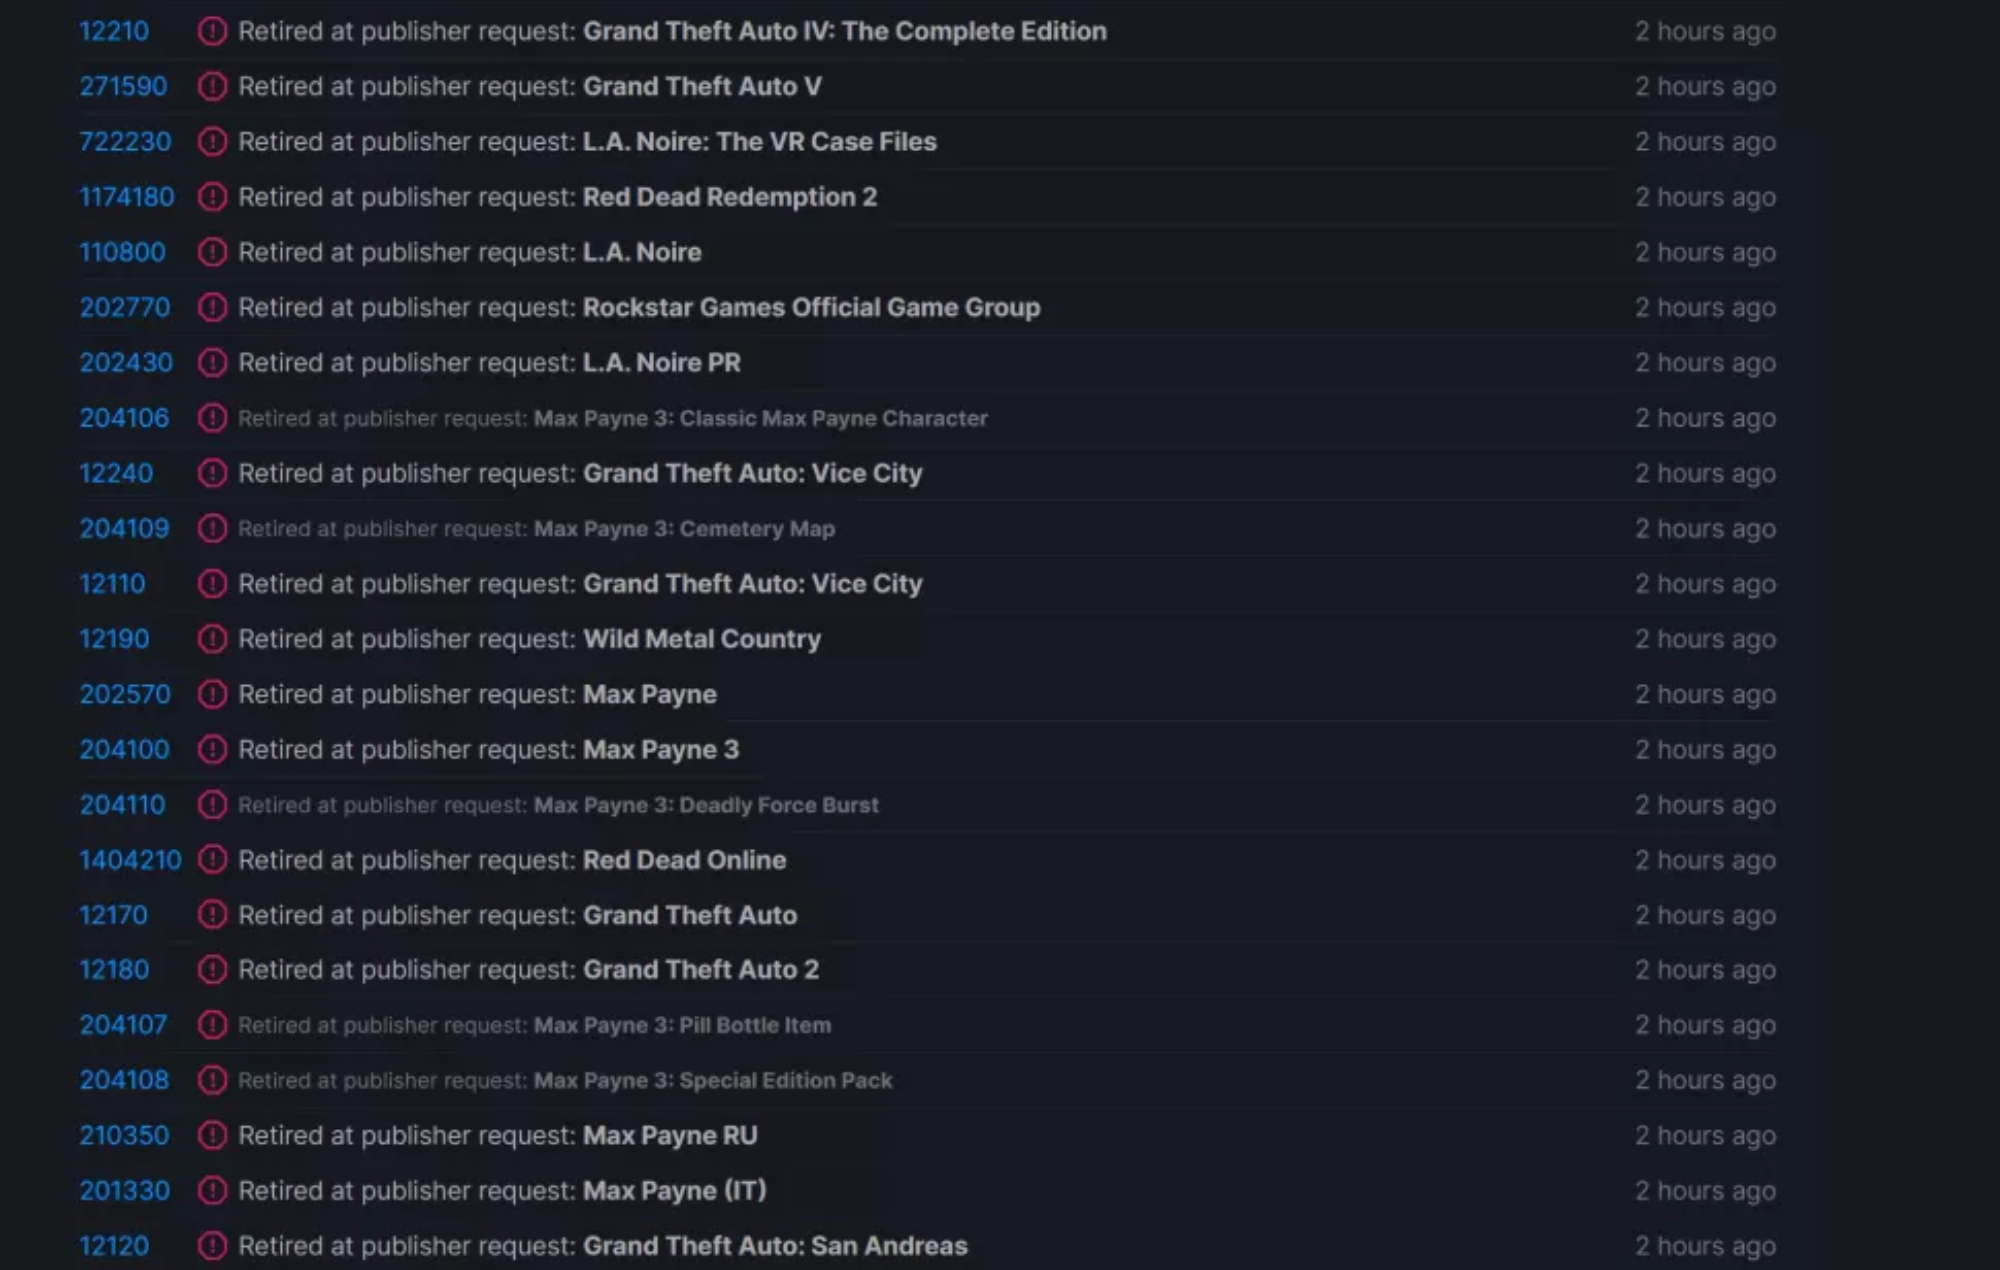 List of Rockstar games pulled from Steam Store accidentally